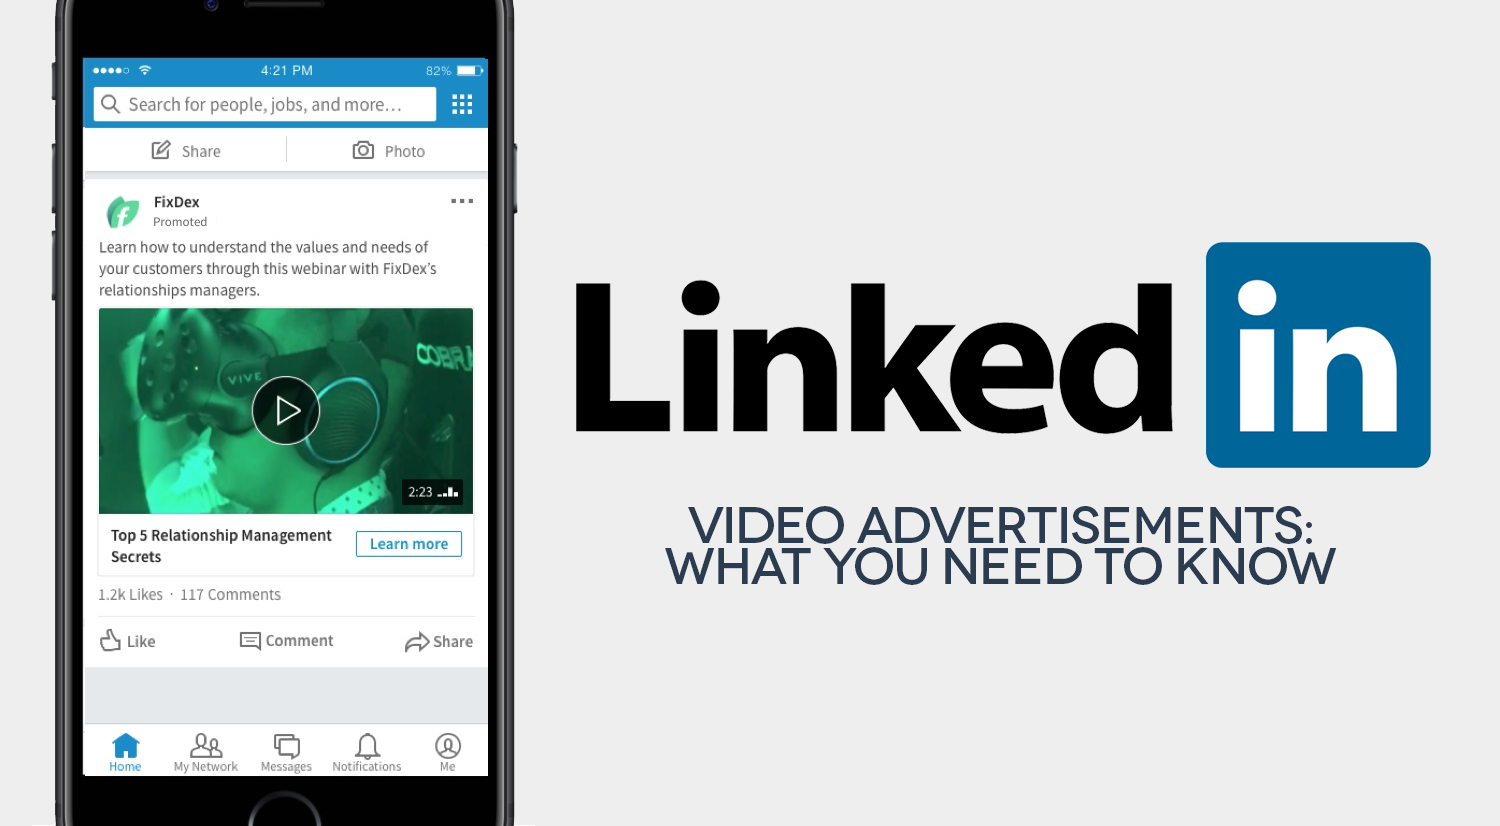 LinkedIn video ads - 2018 Update and what you need to know